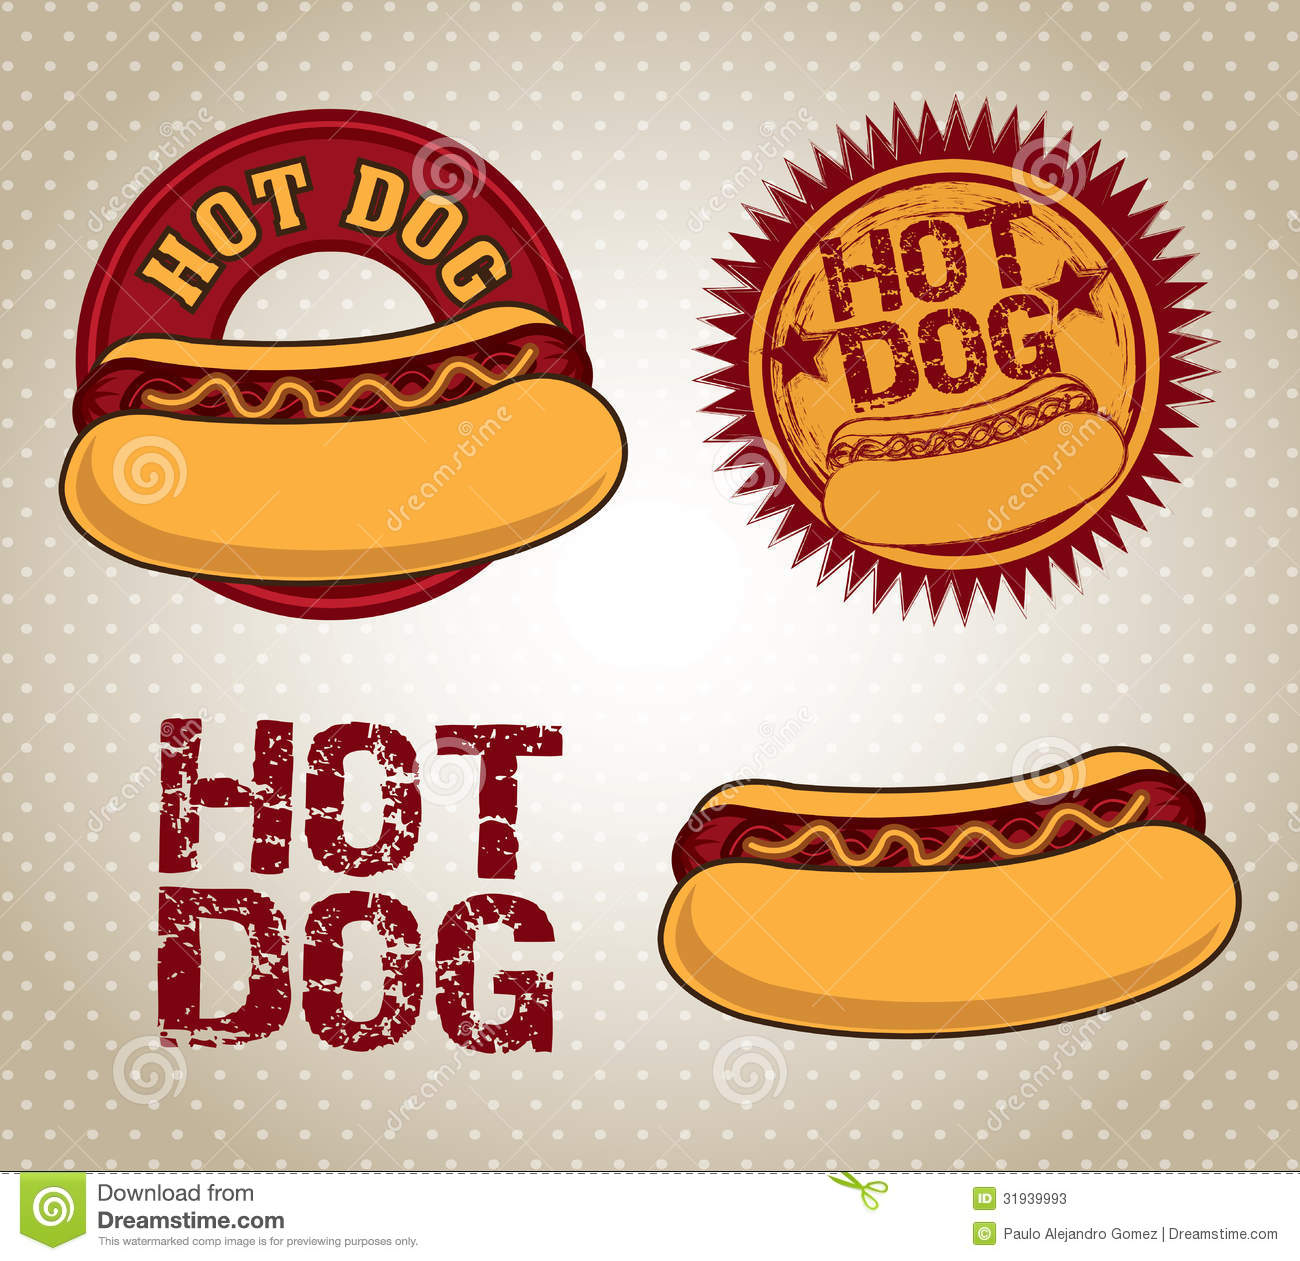 Hot dog king patch nackt videos